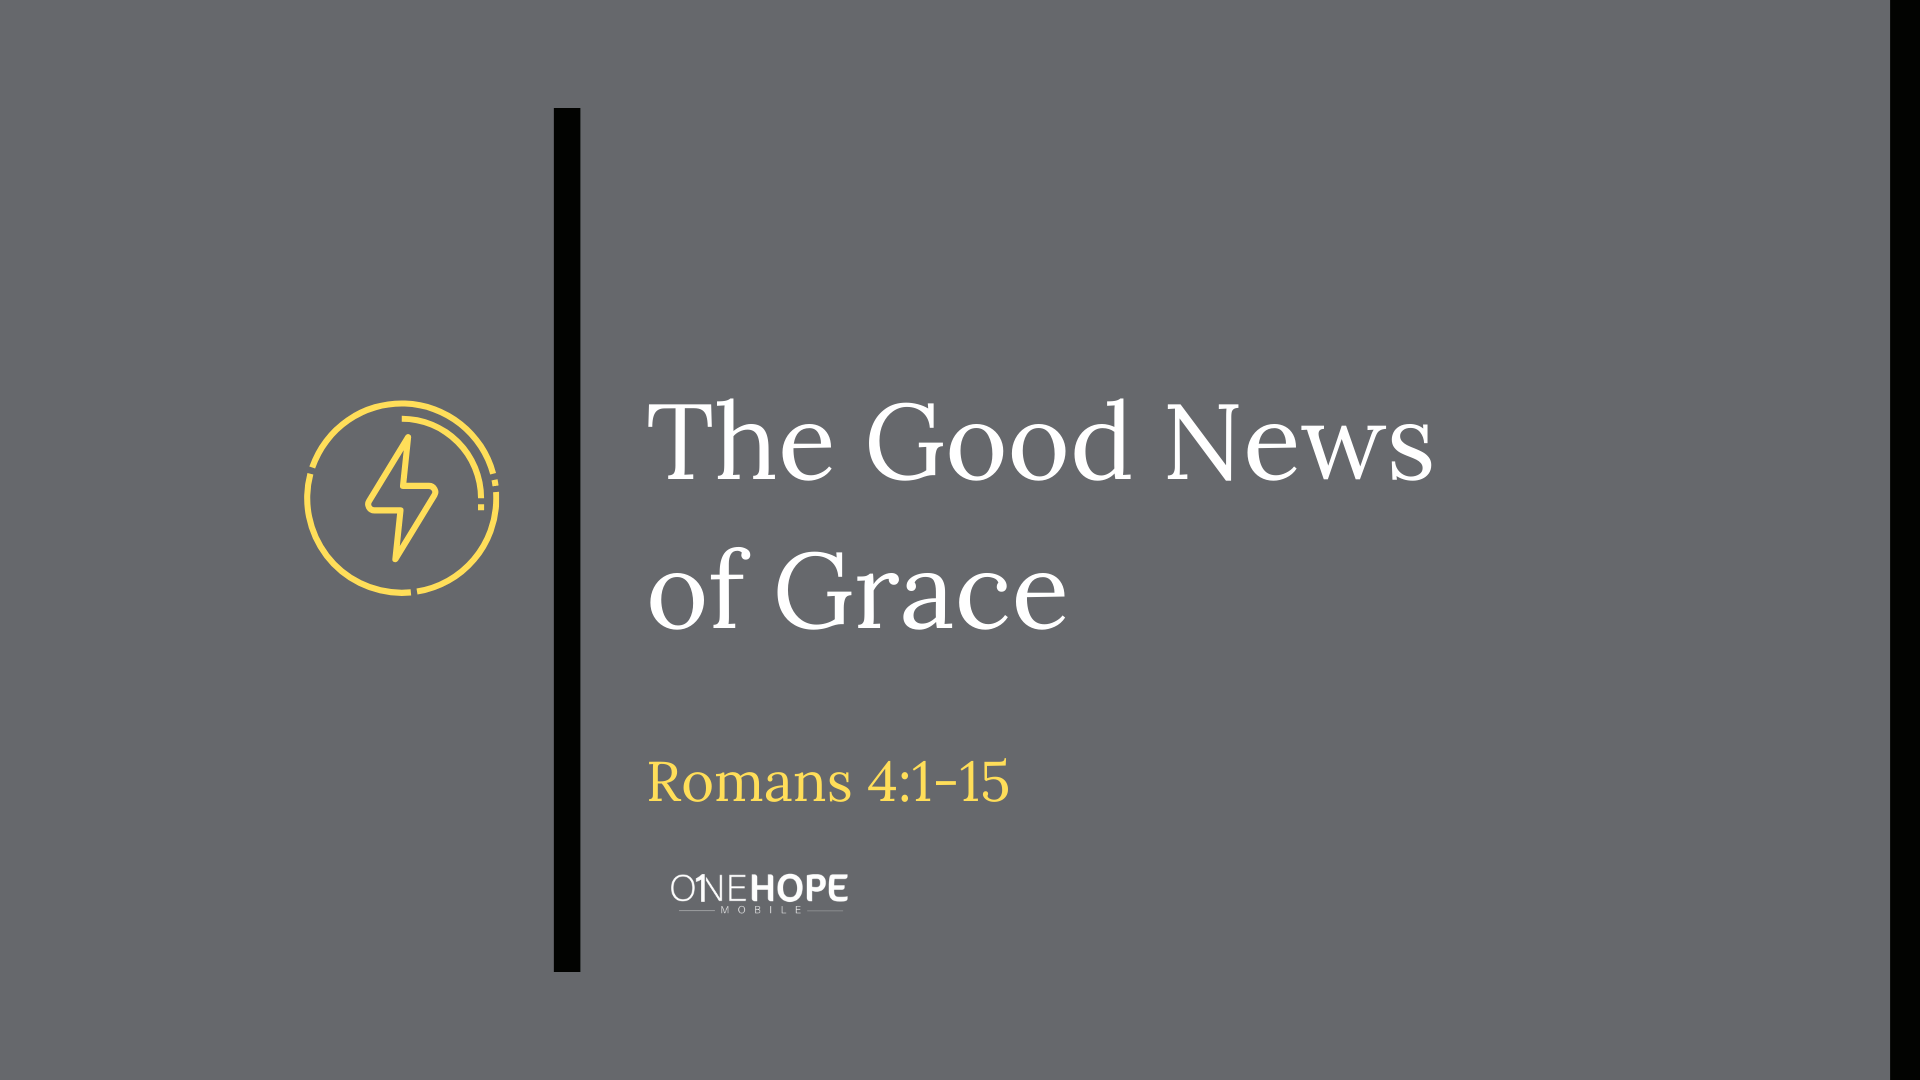 The Good News of Grace